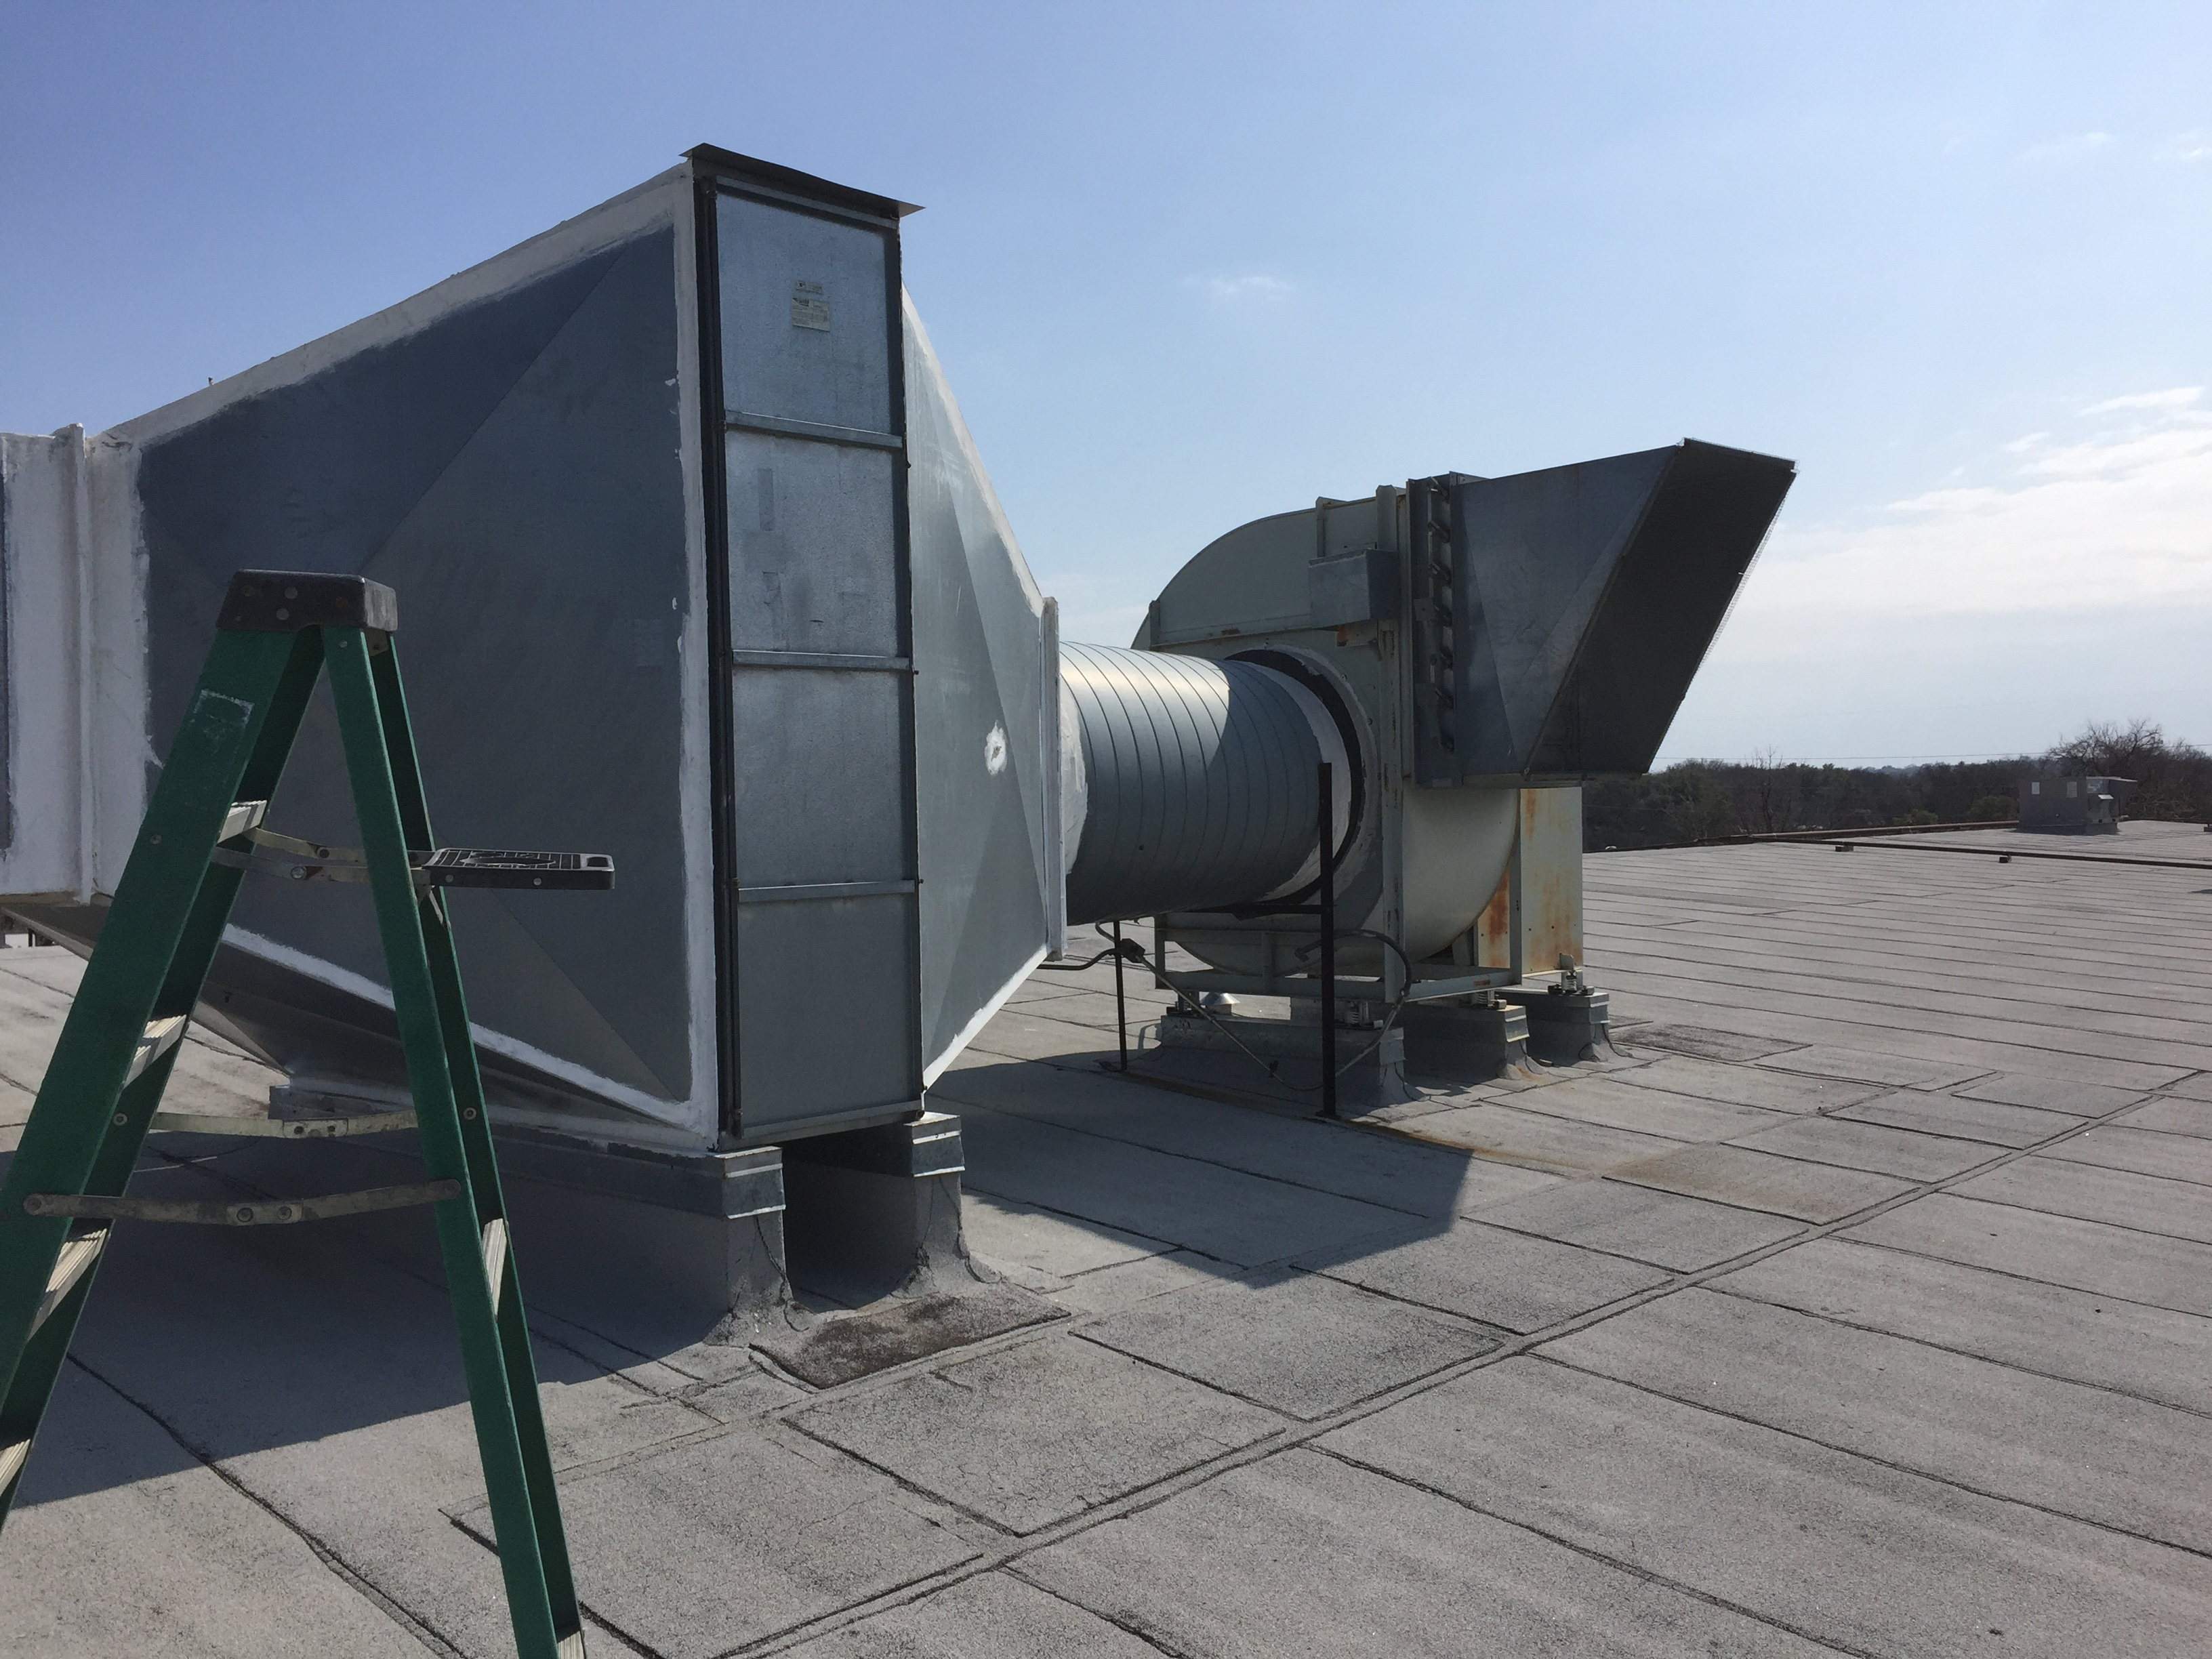 Exhaust system on Carswell Air Force base shooting range we maintain.